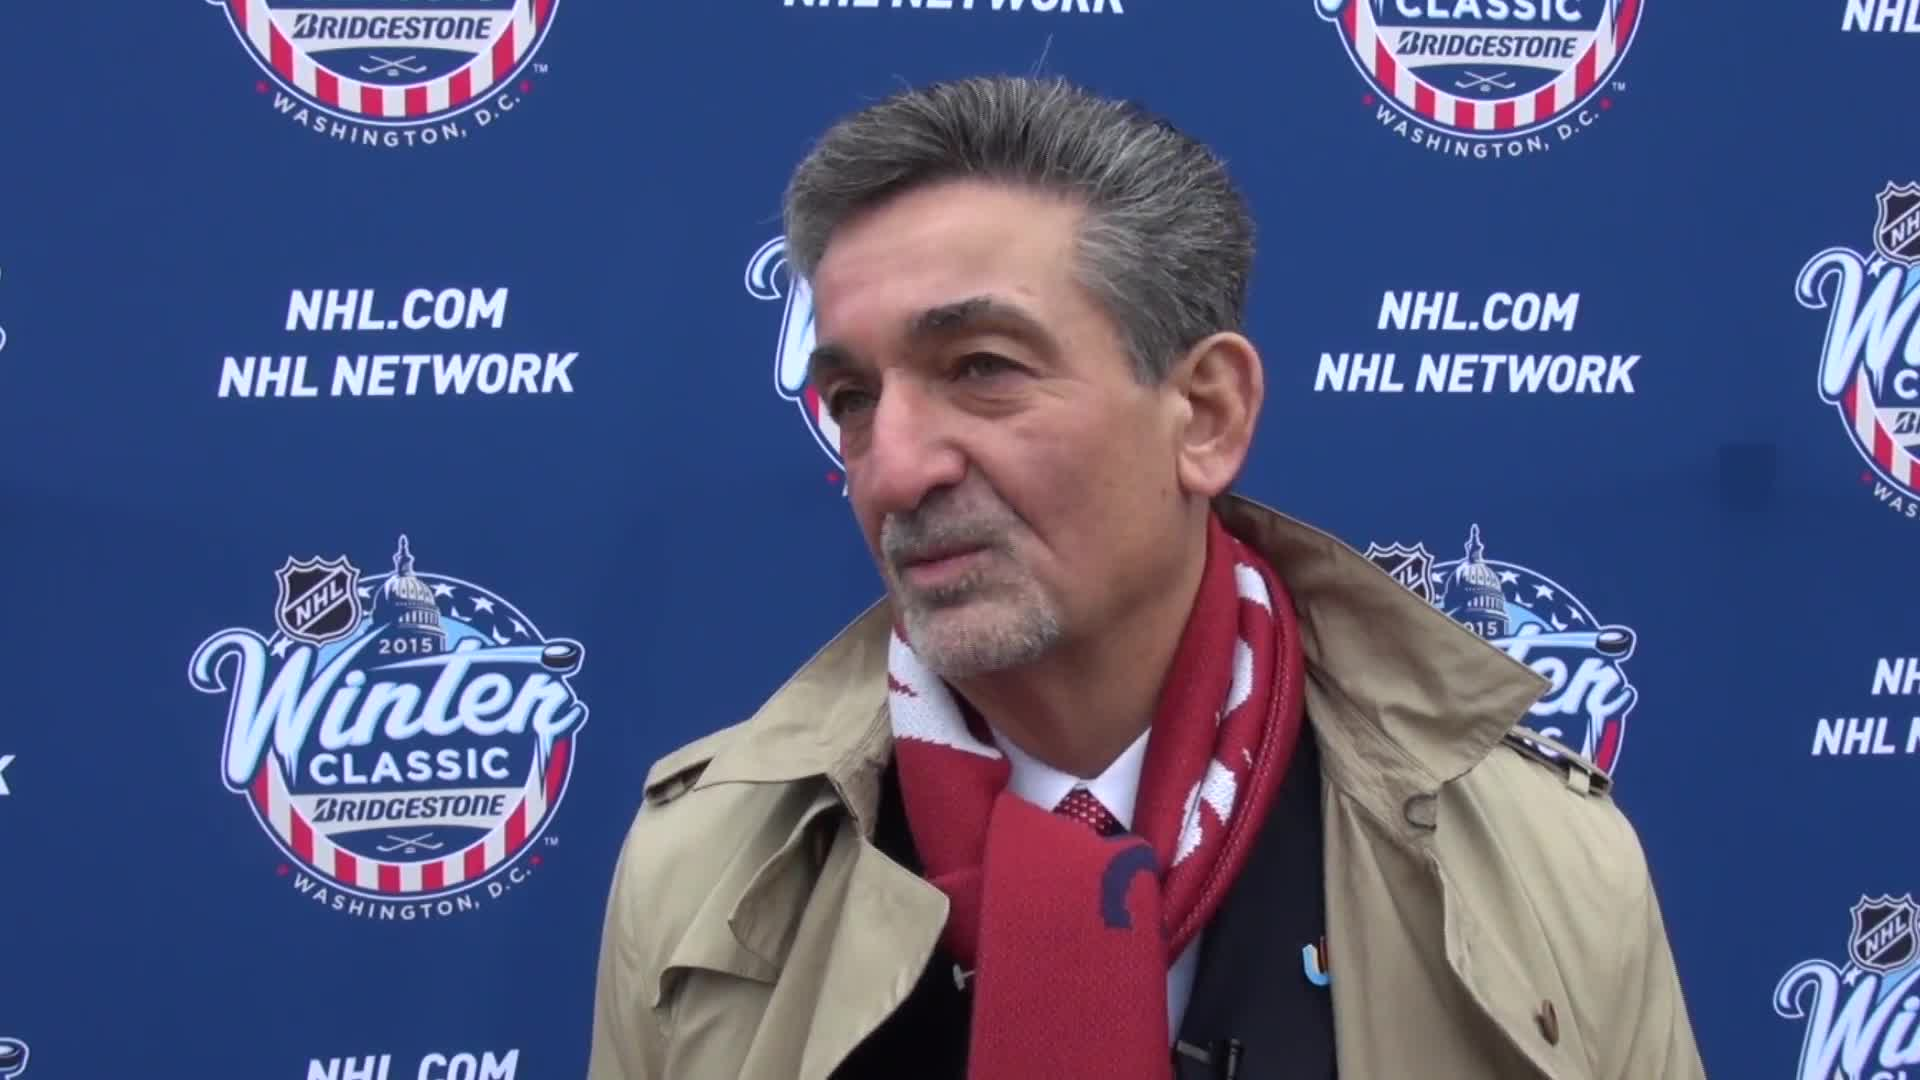 Ted Leonsis on bringing Olympic games to D.C.: 'I want to disprove that we're a dysfunctional community' (Video)